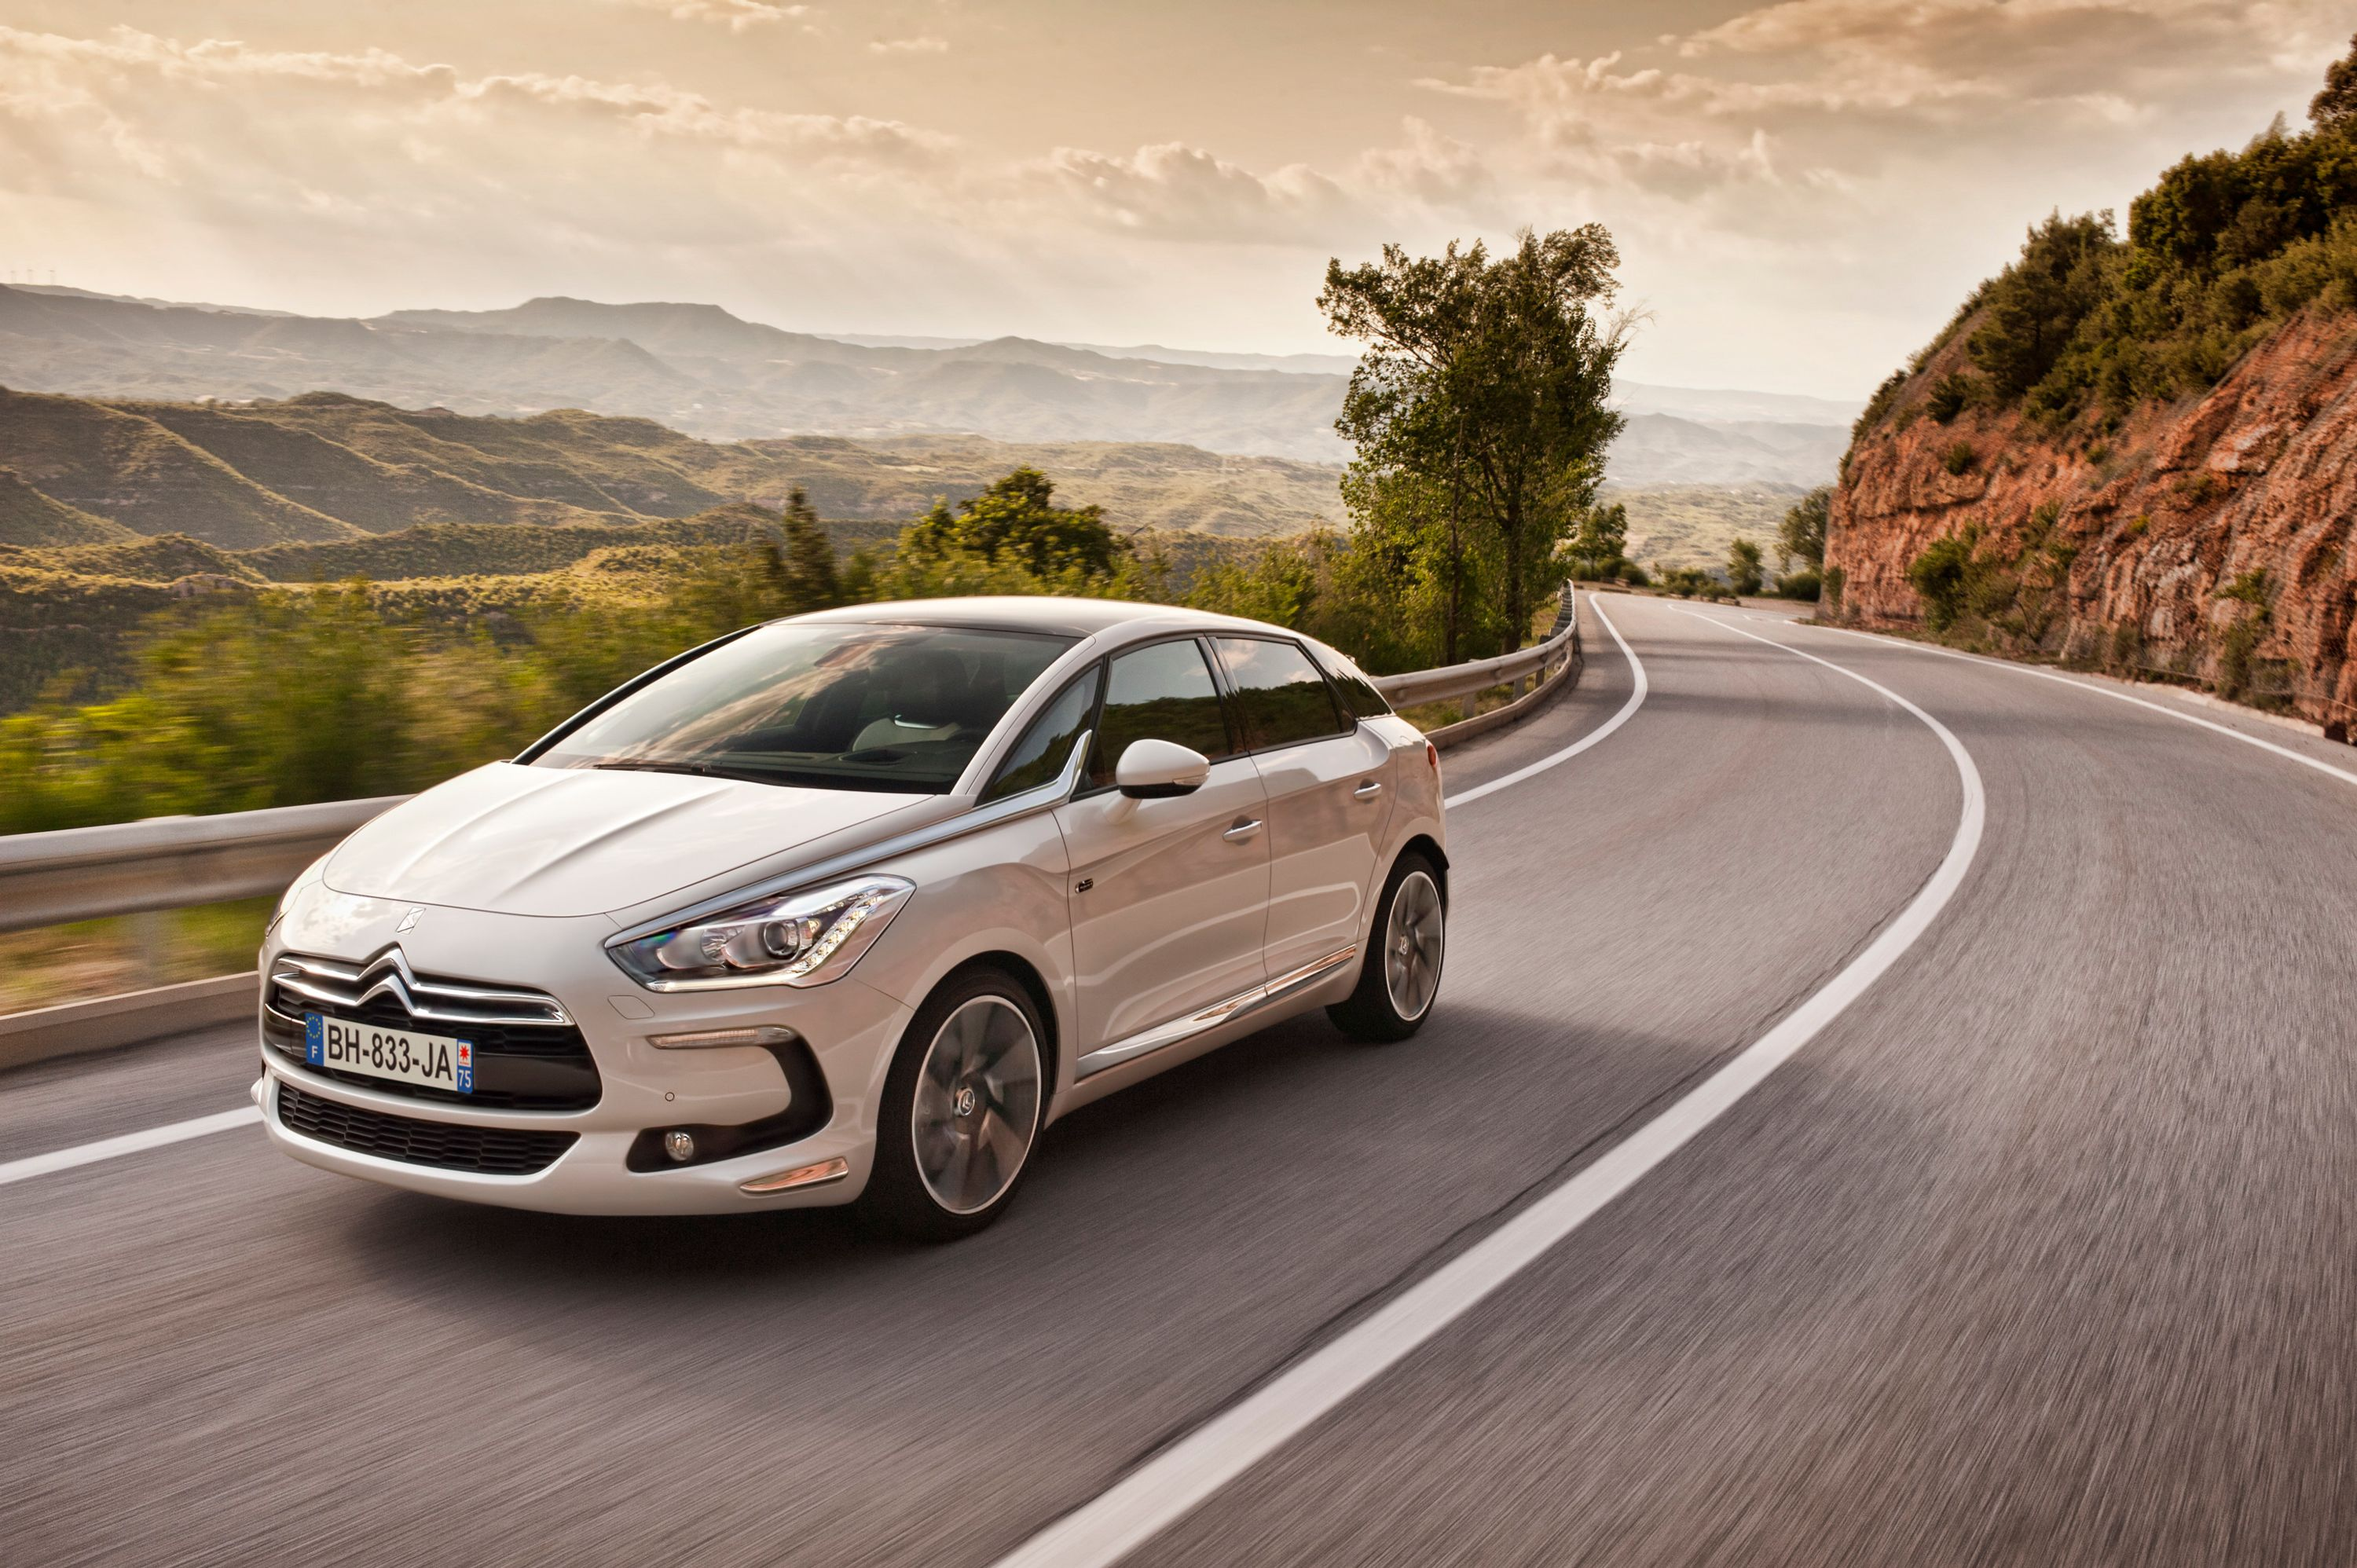 Peugeot Buy Back: Lease a Peugeot in Europe with Kemwel